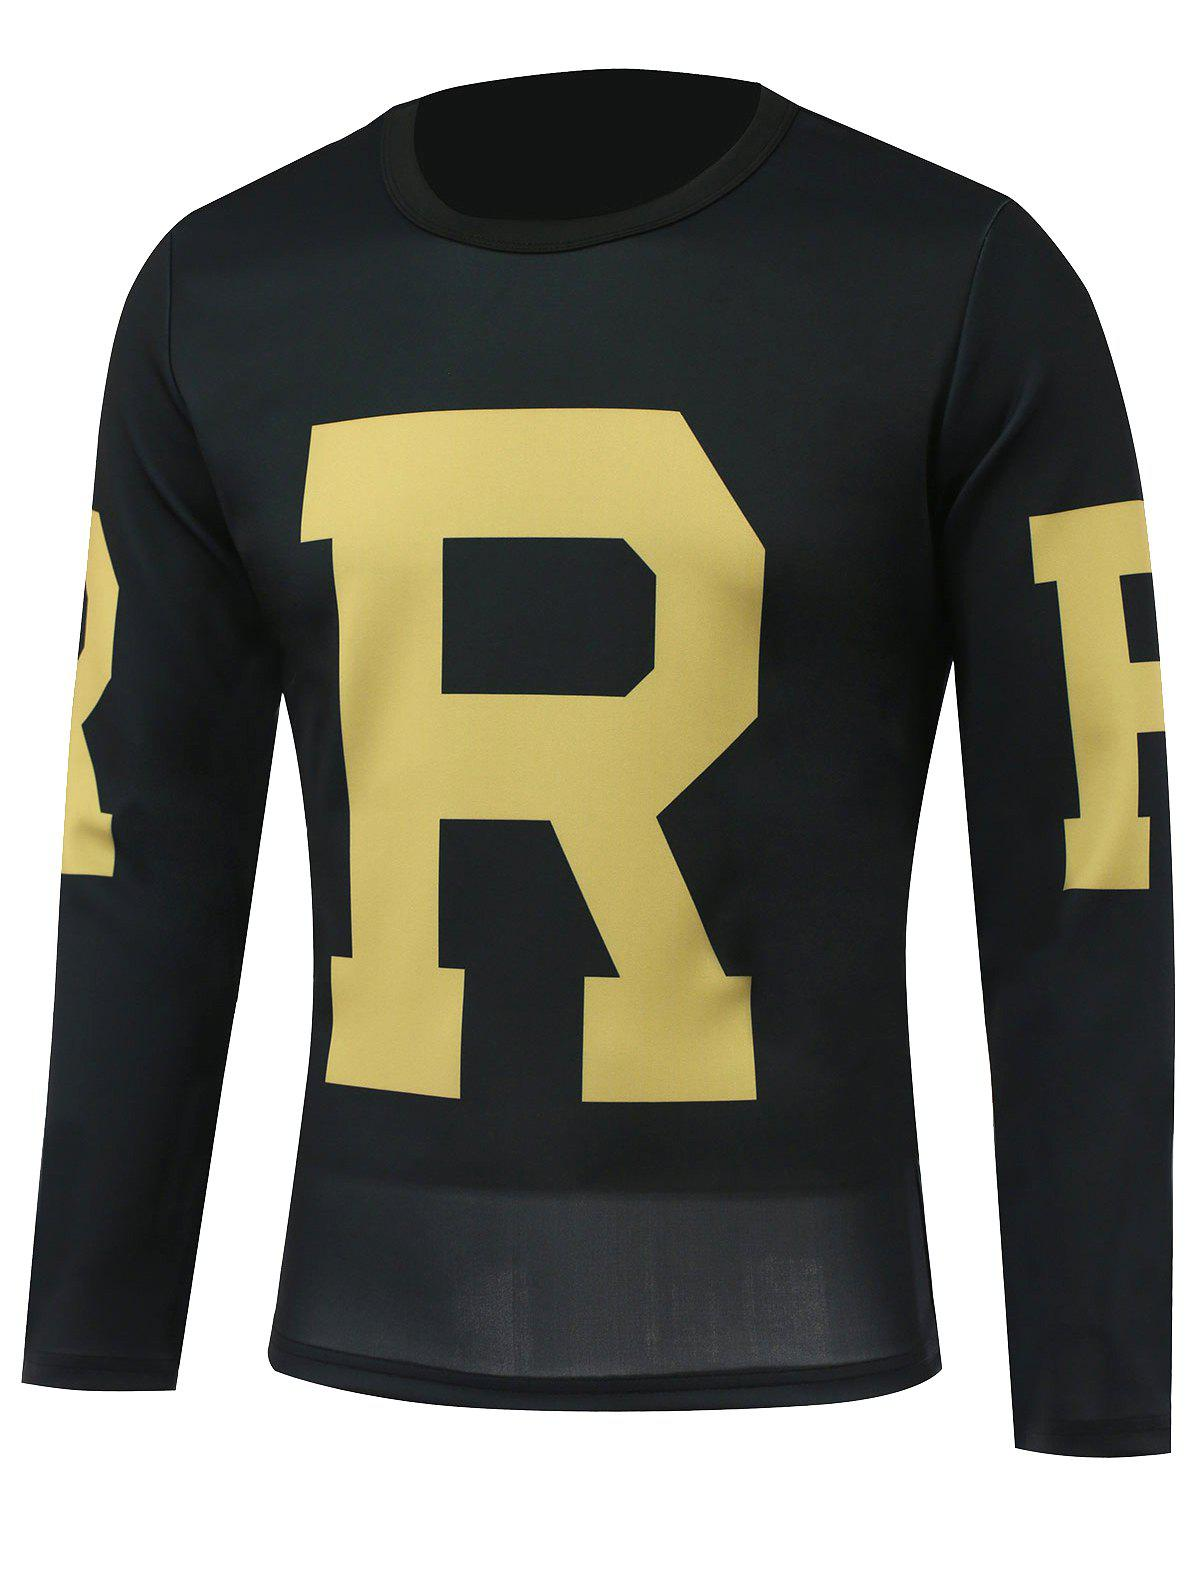 Long Sleeves Letter Printed Round Neck T-Shirt - BLACK M